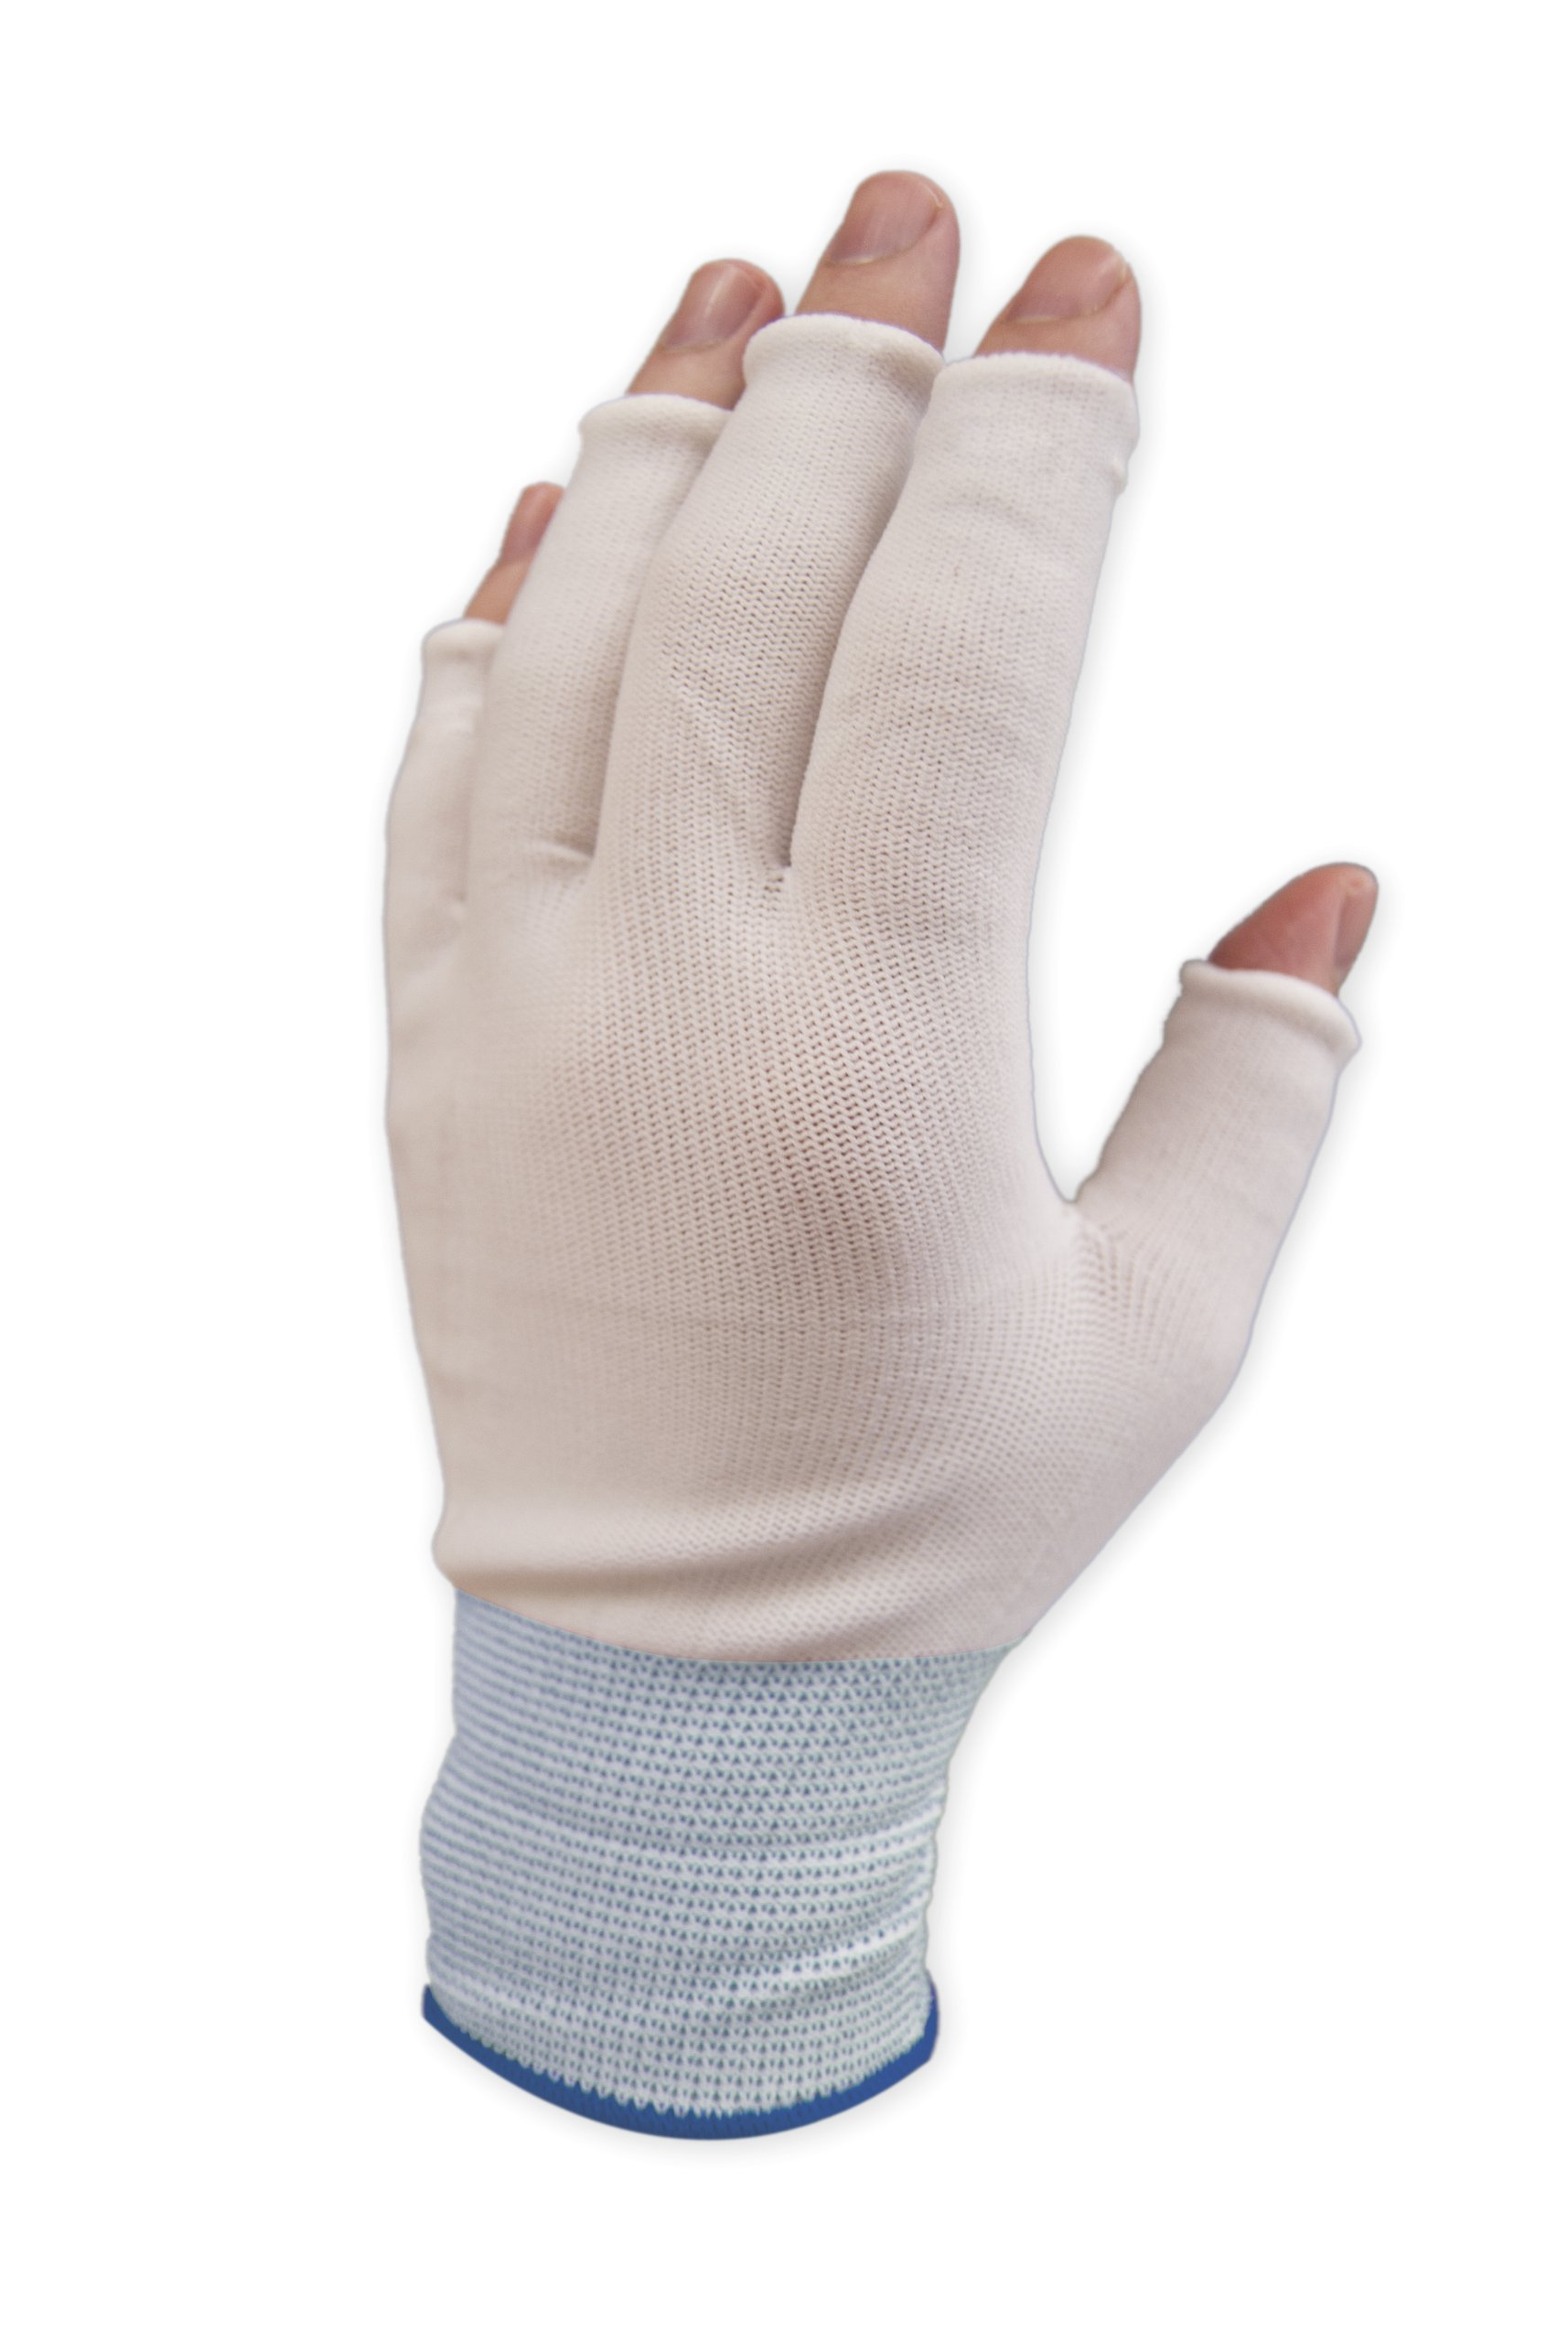 Purus GLHF-L Nylon Half Finger Knit Glove Liner Cuff, 1.7 Mils Thick, Large (Pack of 300 Pairs) by Purus